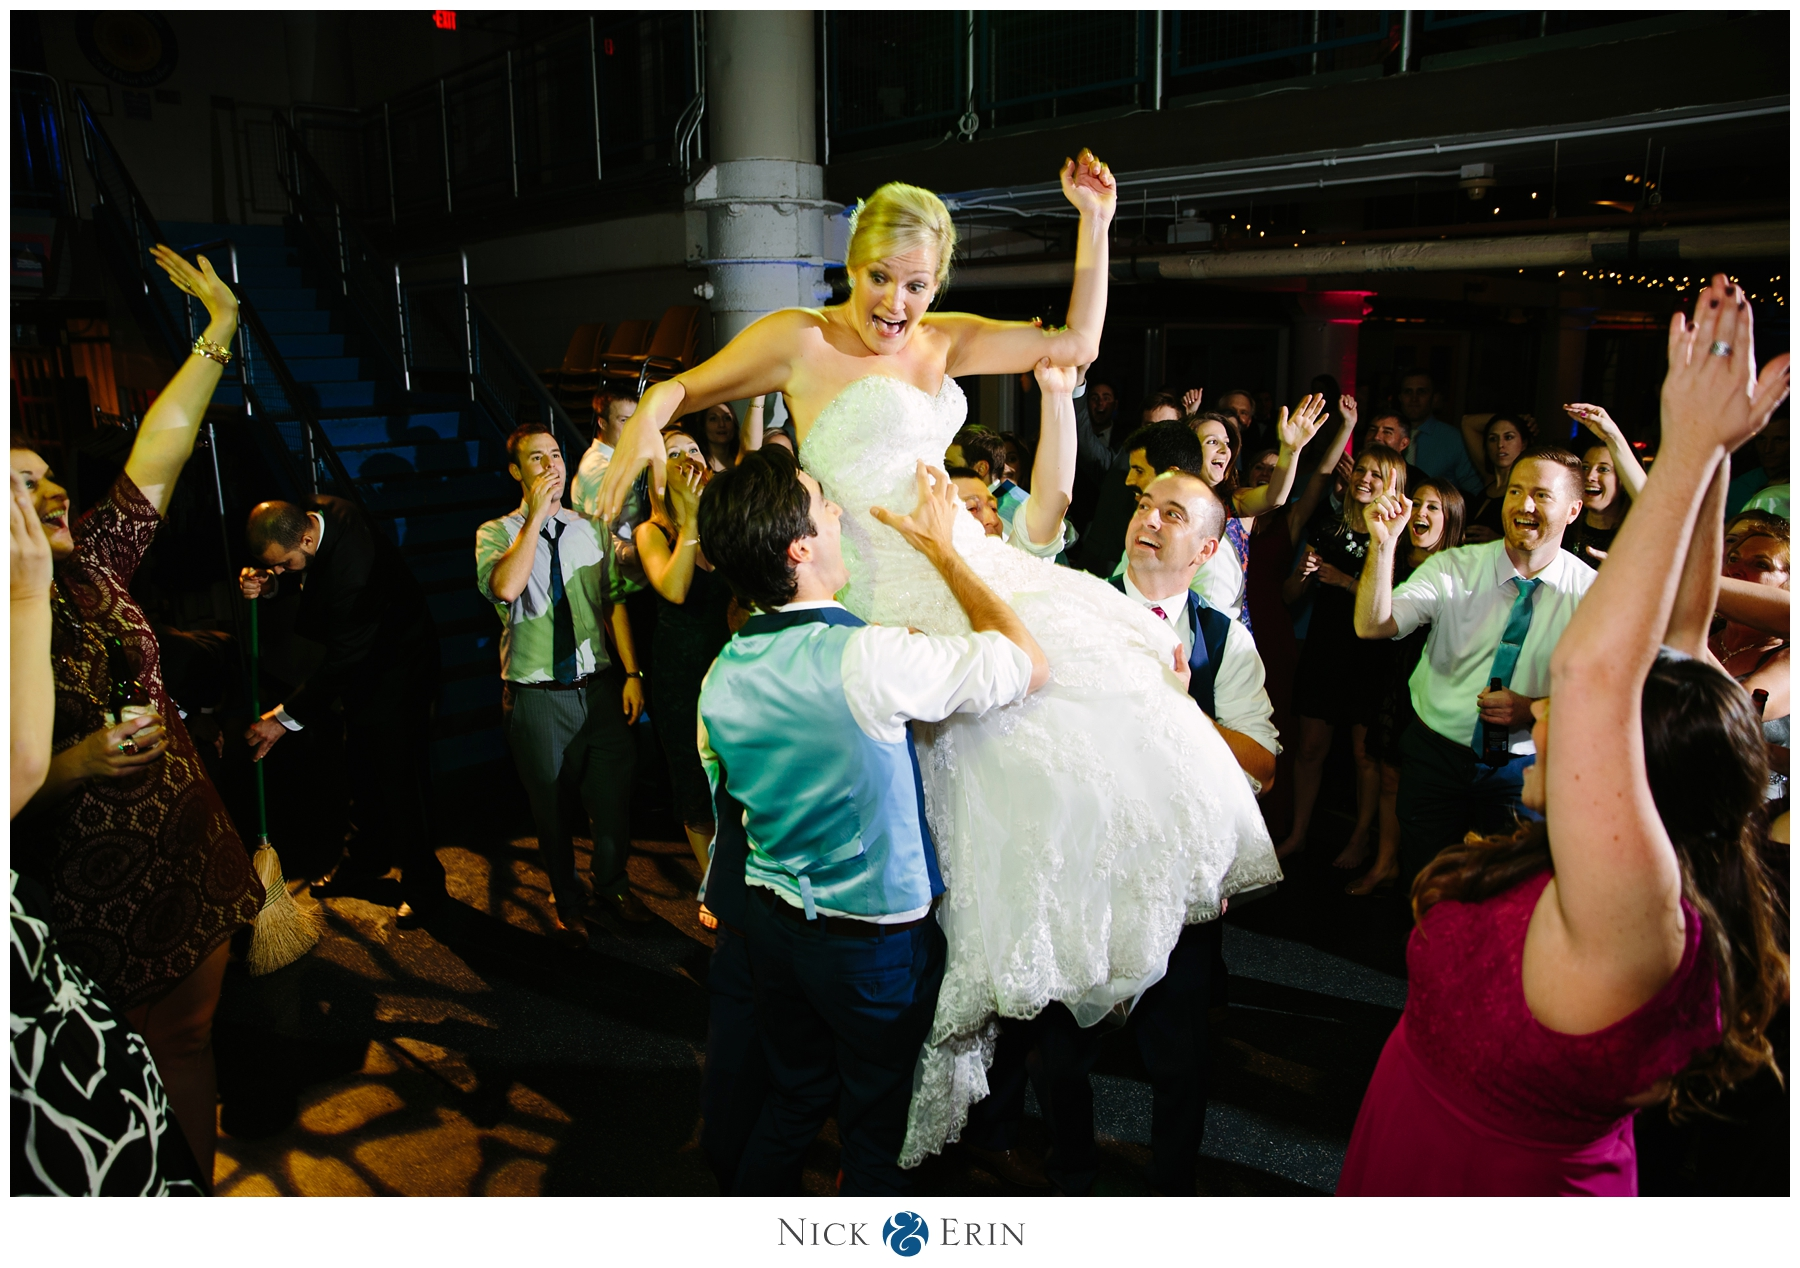 Donner_Photography_Torpedo Factory Wedding_Courtney and Scott_0063